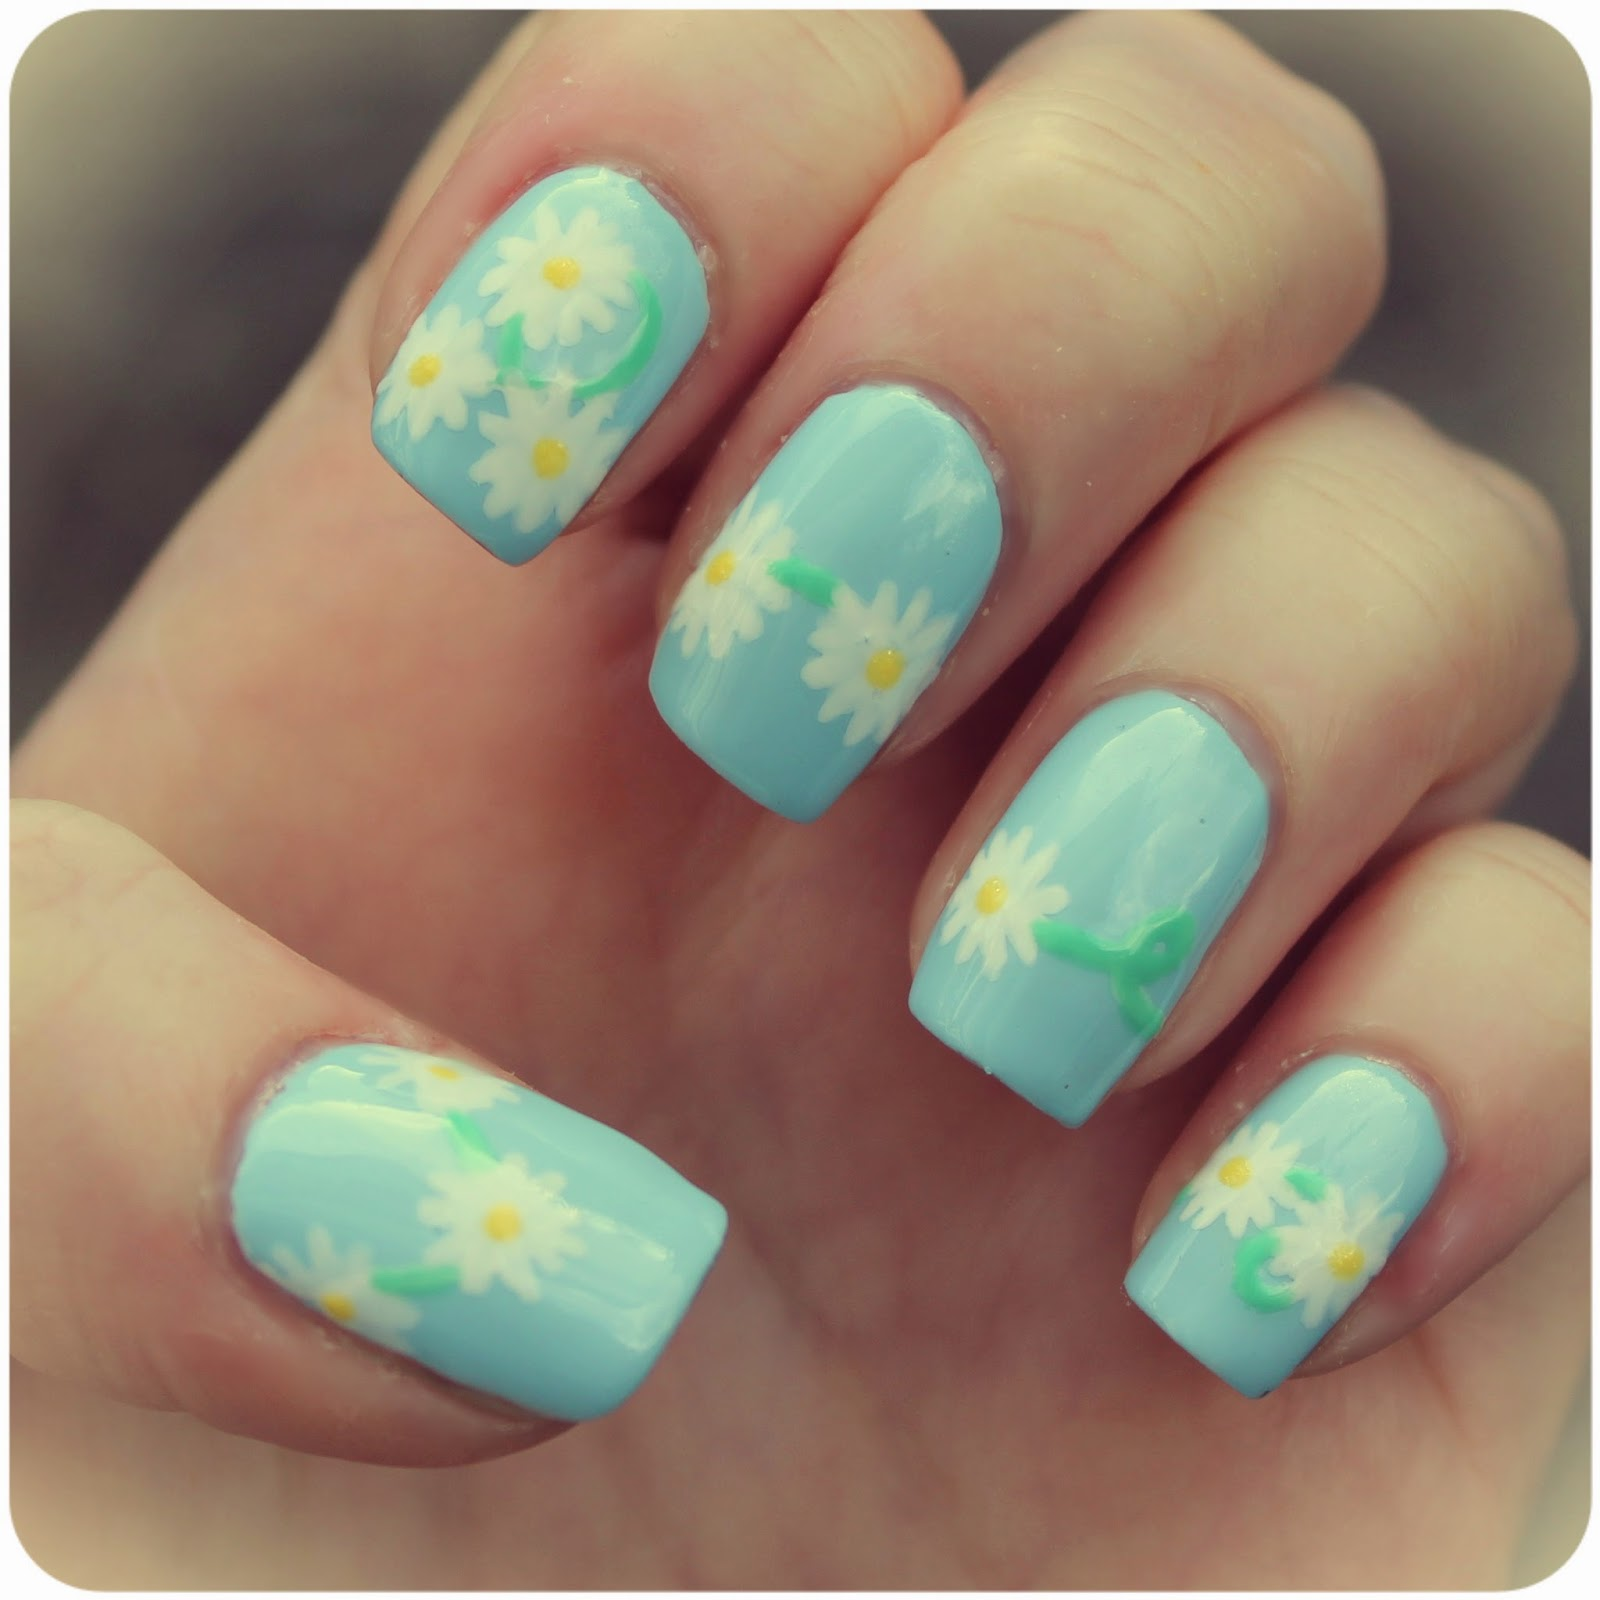 Dahlia Nails: Daisy Chain